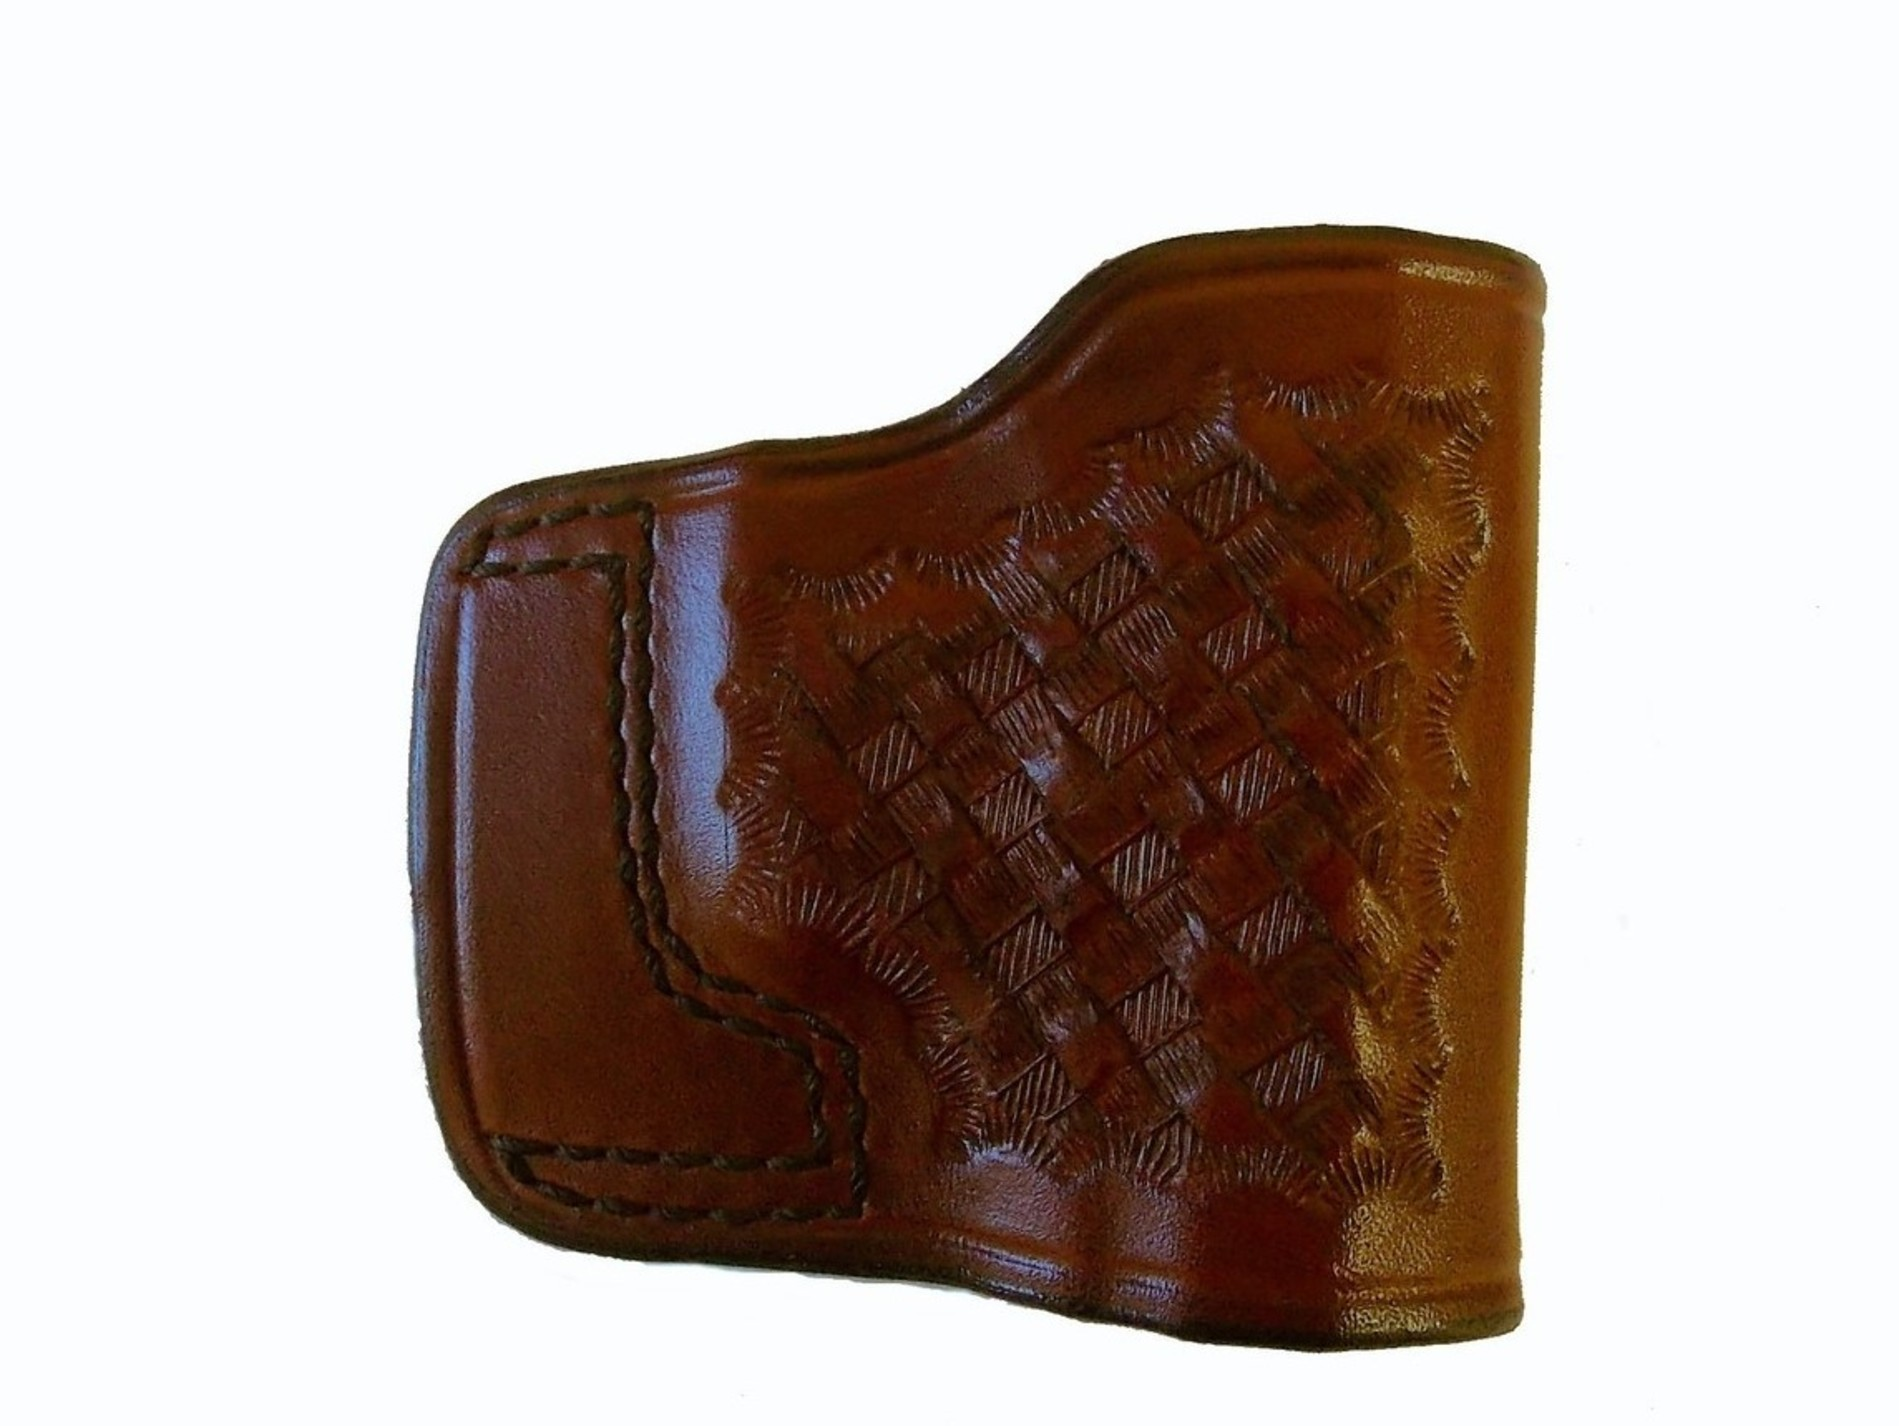 *J.I.T. SLIDE BASKETWEAVE BELT HOLSTER (OVERSTOCK/CLOSEOUT)